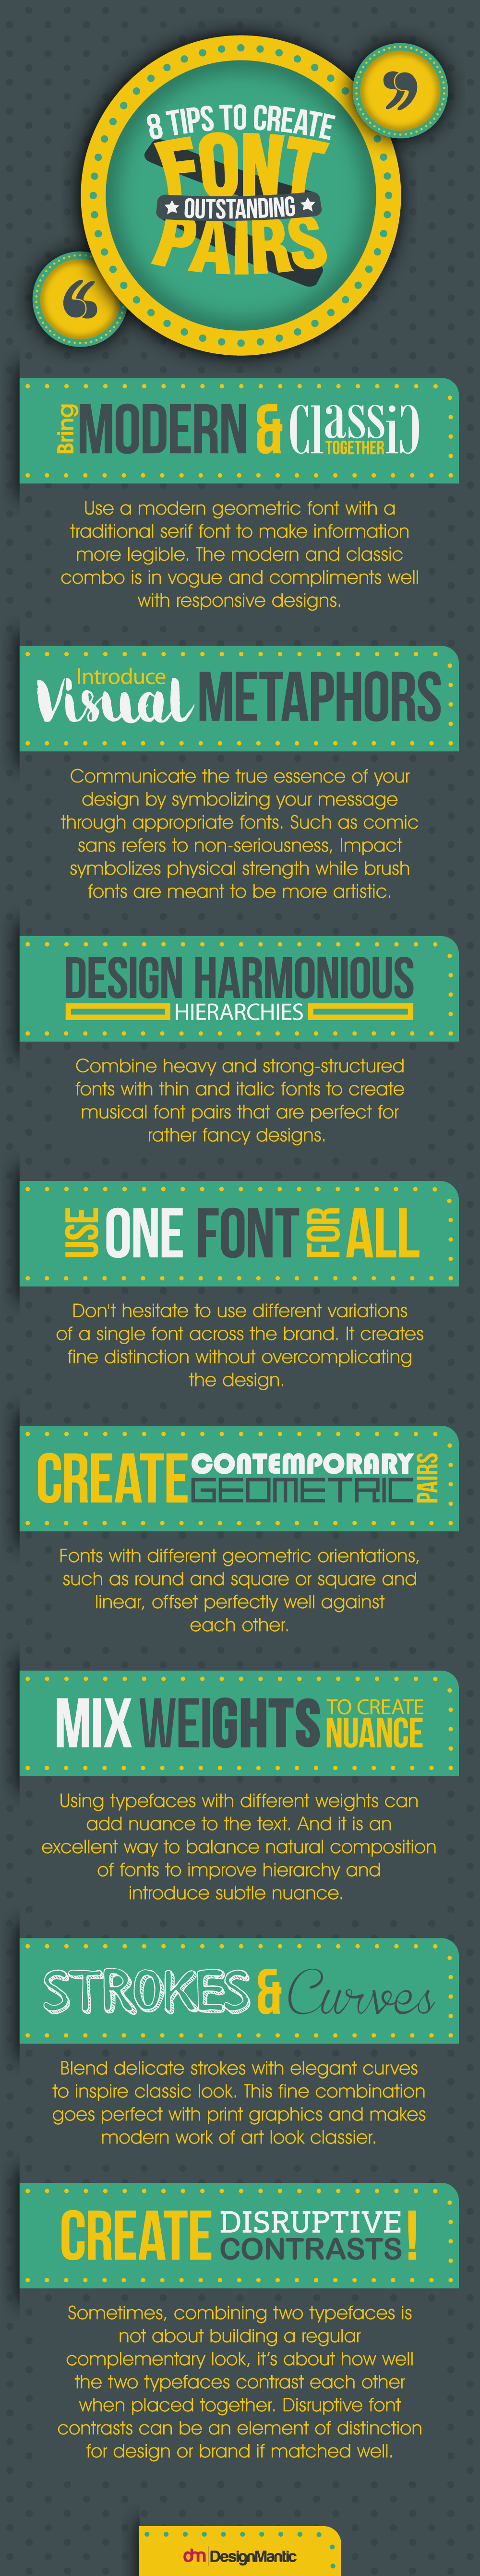 This Graphic Shows How to Pair Multiple Fonts Together For Better Designs